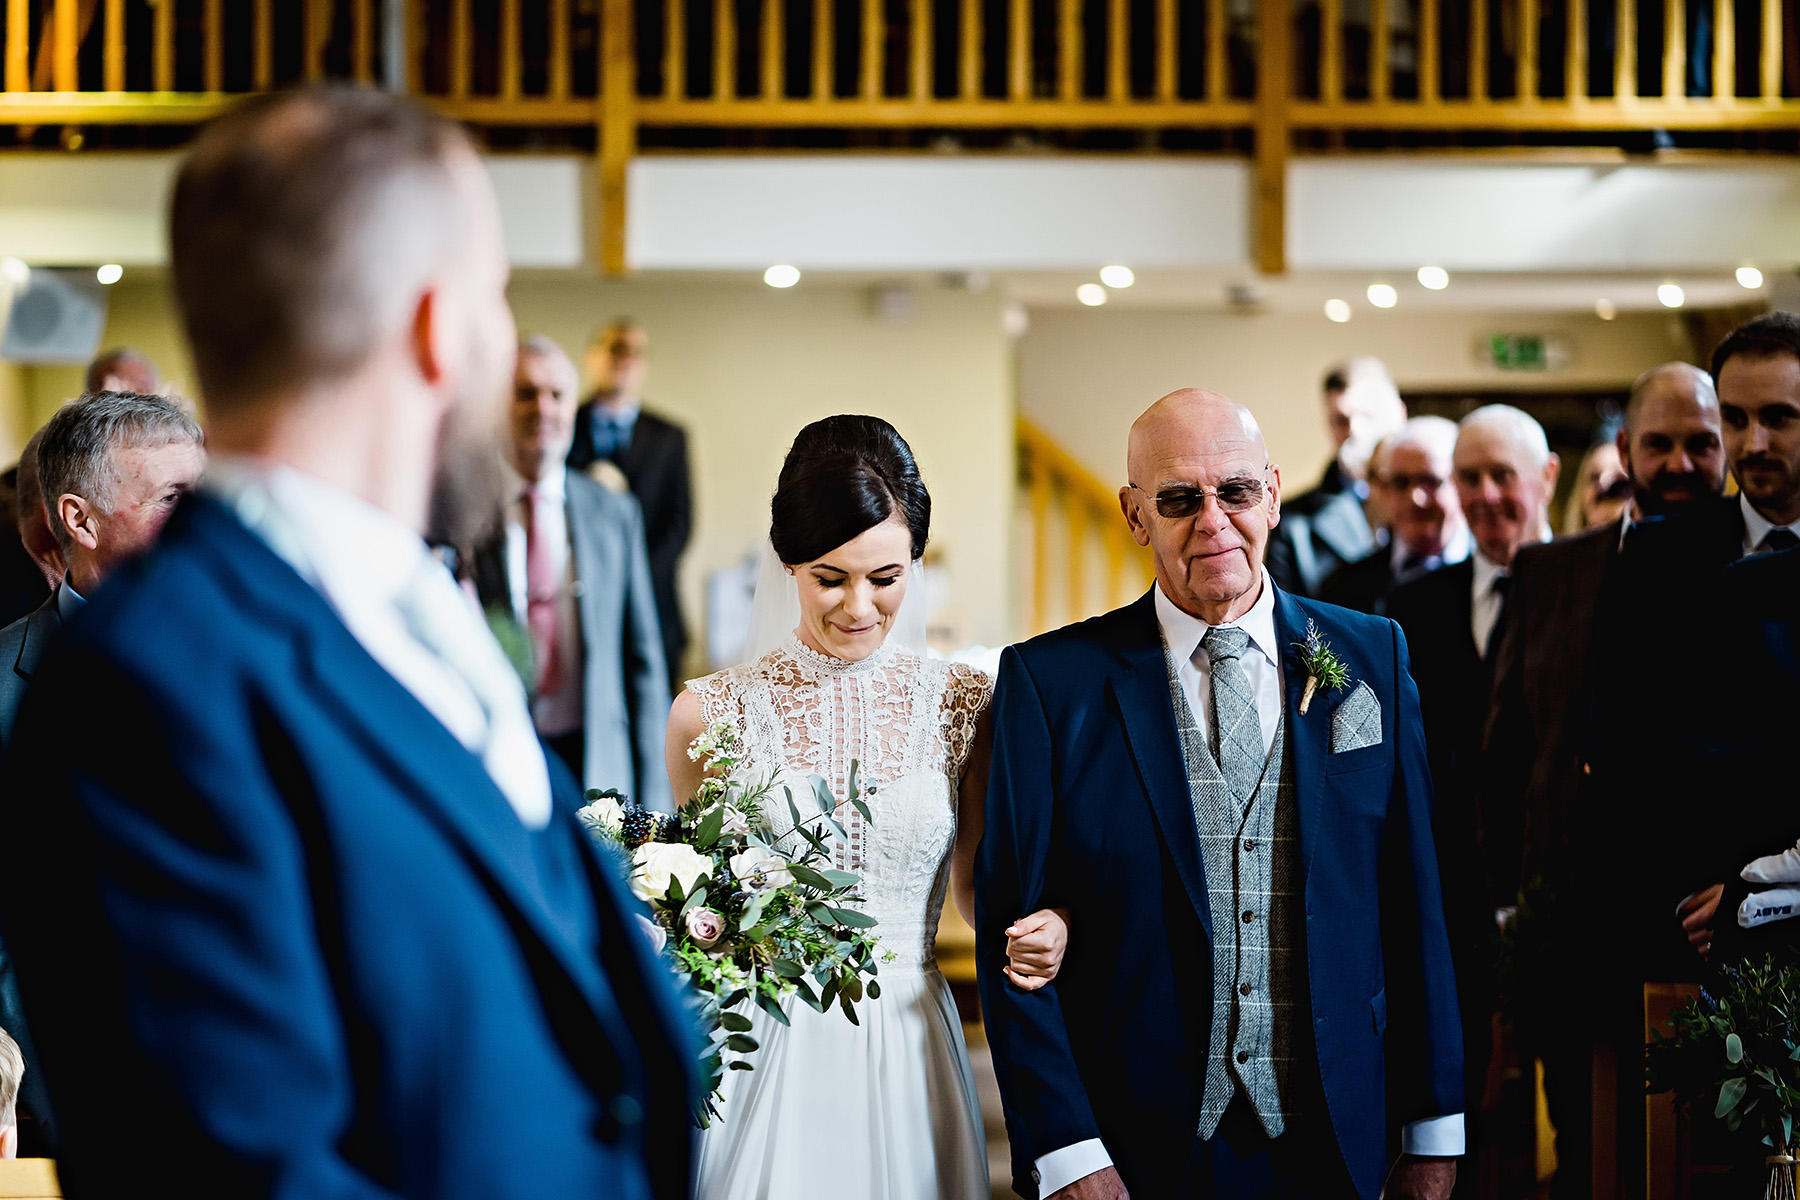 The Ceremony at The Ashes Wedding Venue